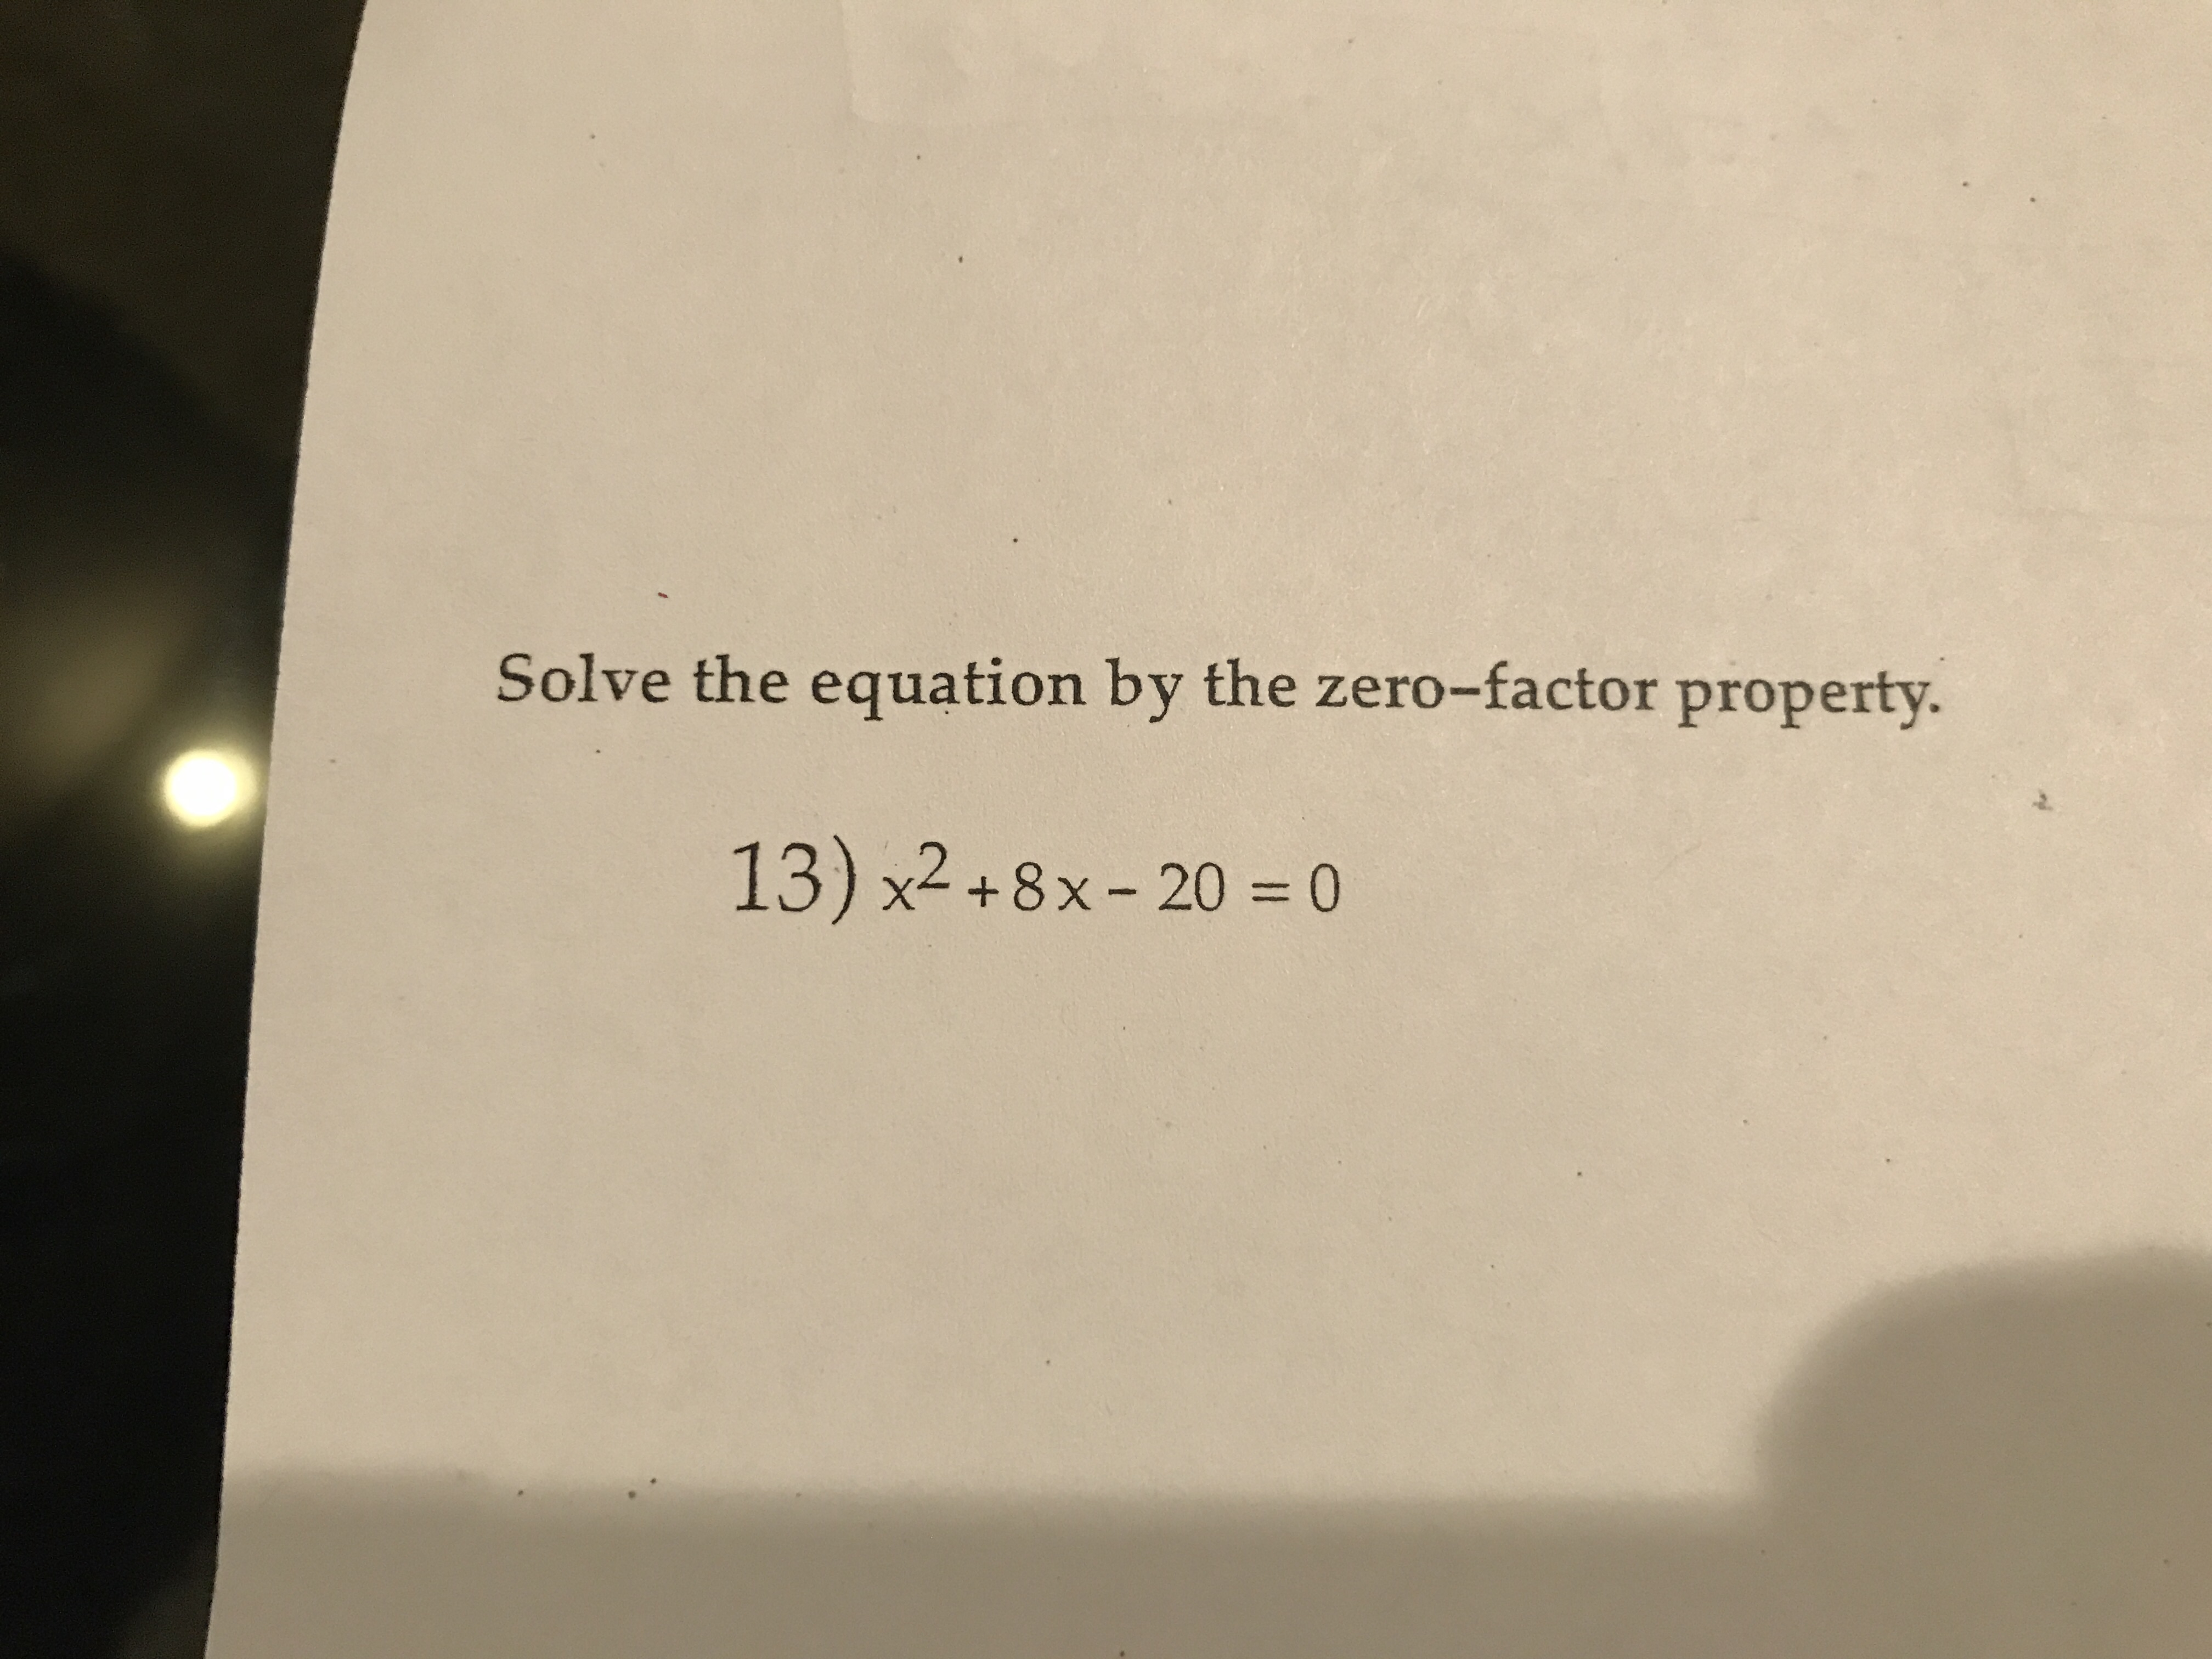 Solve the equation by the zero-factor property. 13) x2+8x-20 = 0